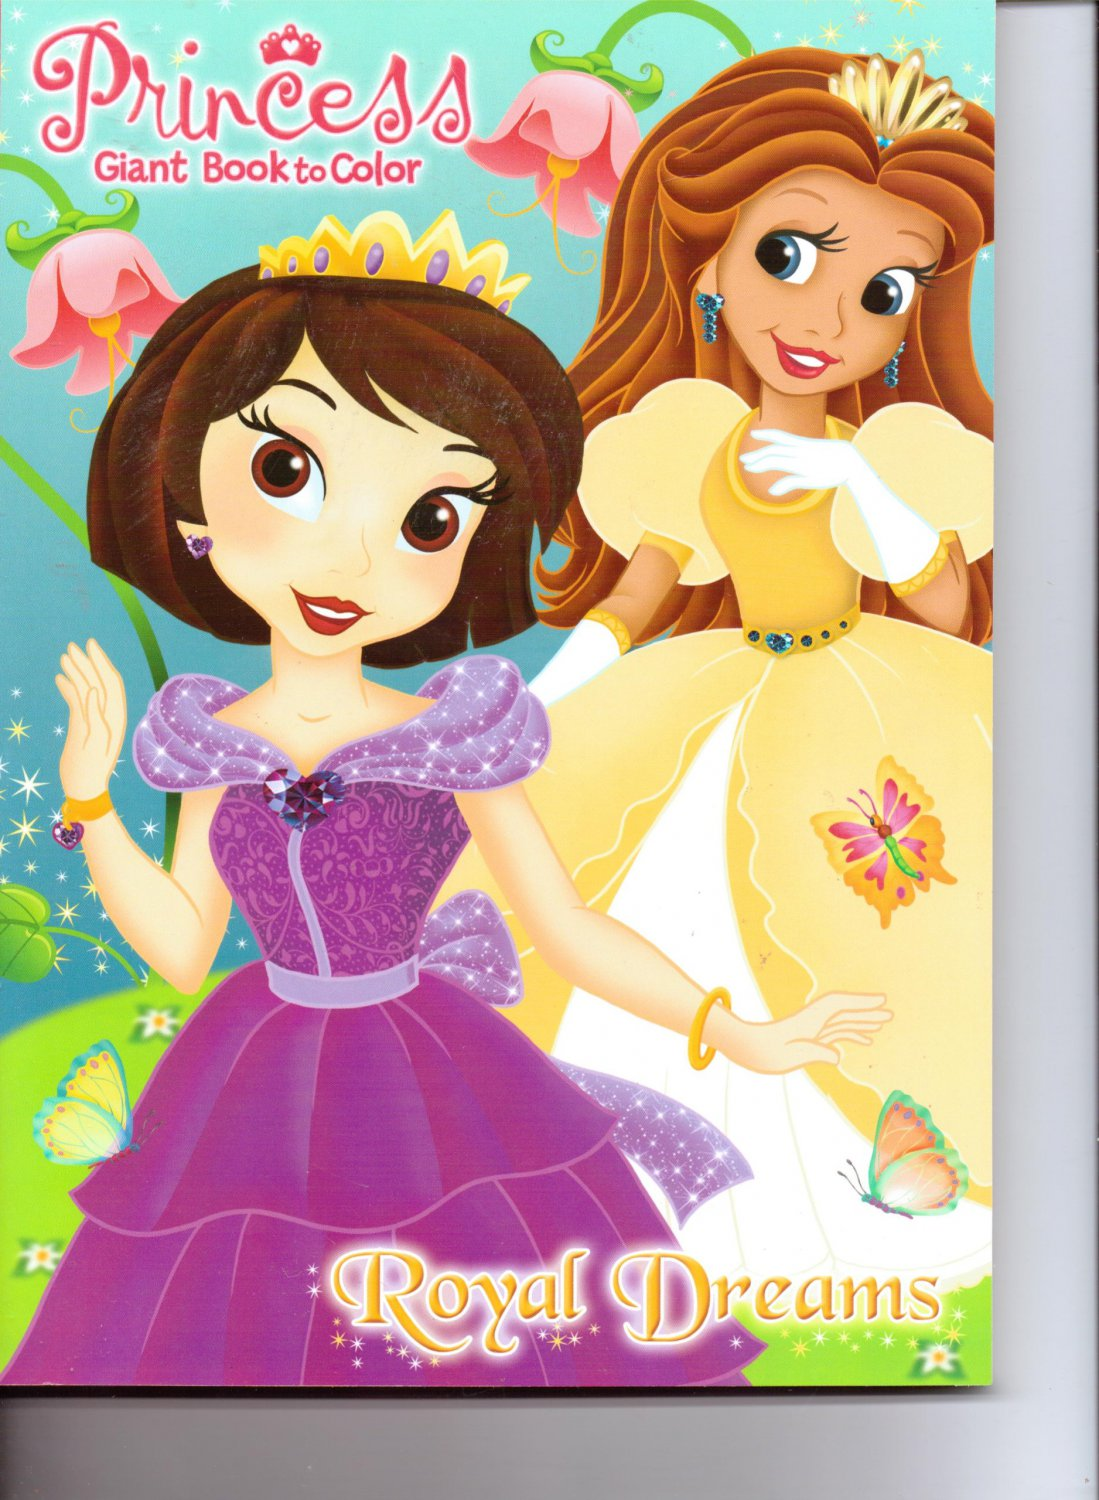 Princess Giant Book to Color ~ Royal Dreams. Assorted